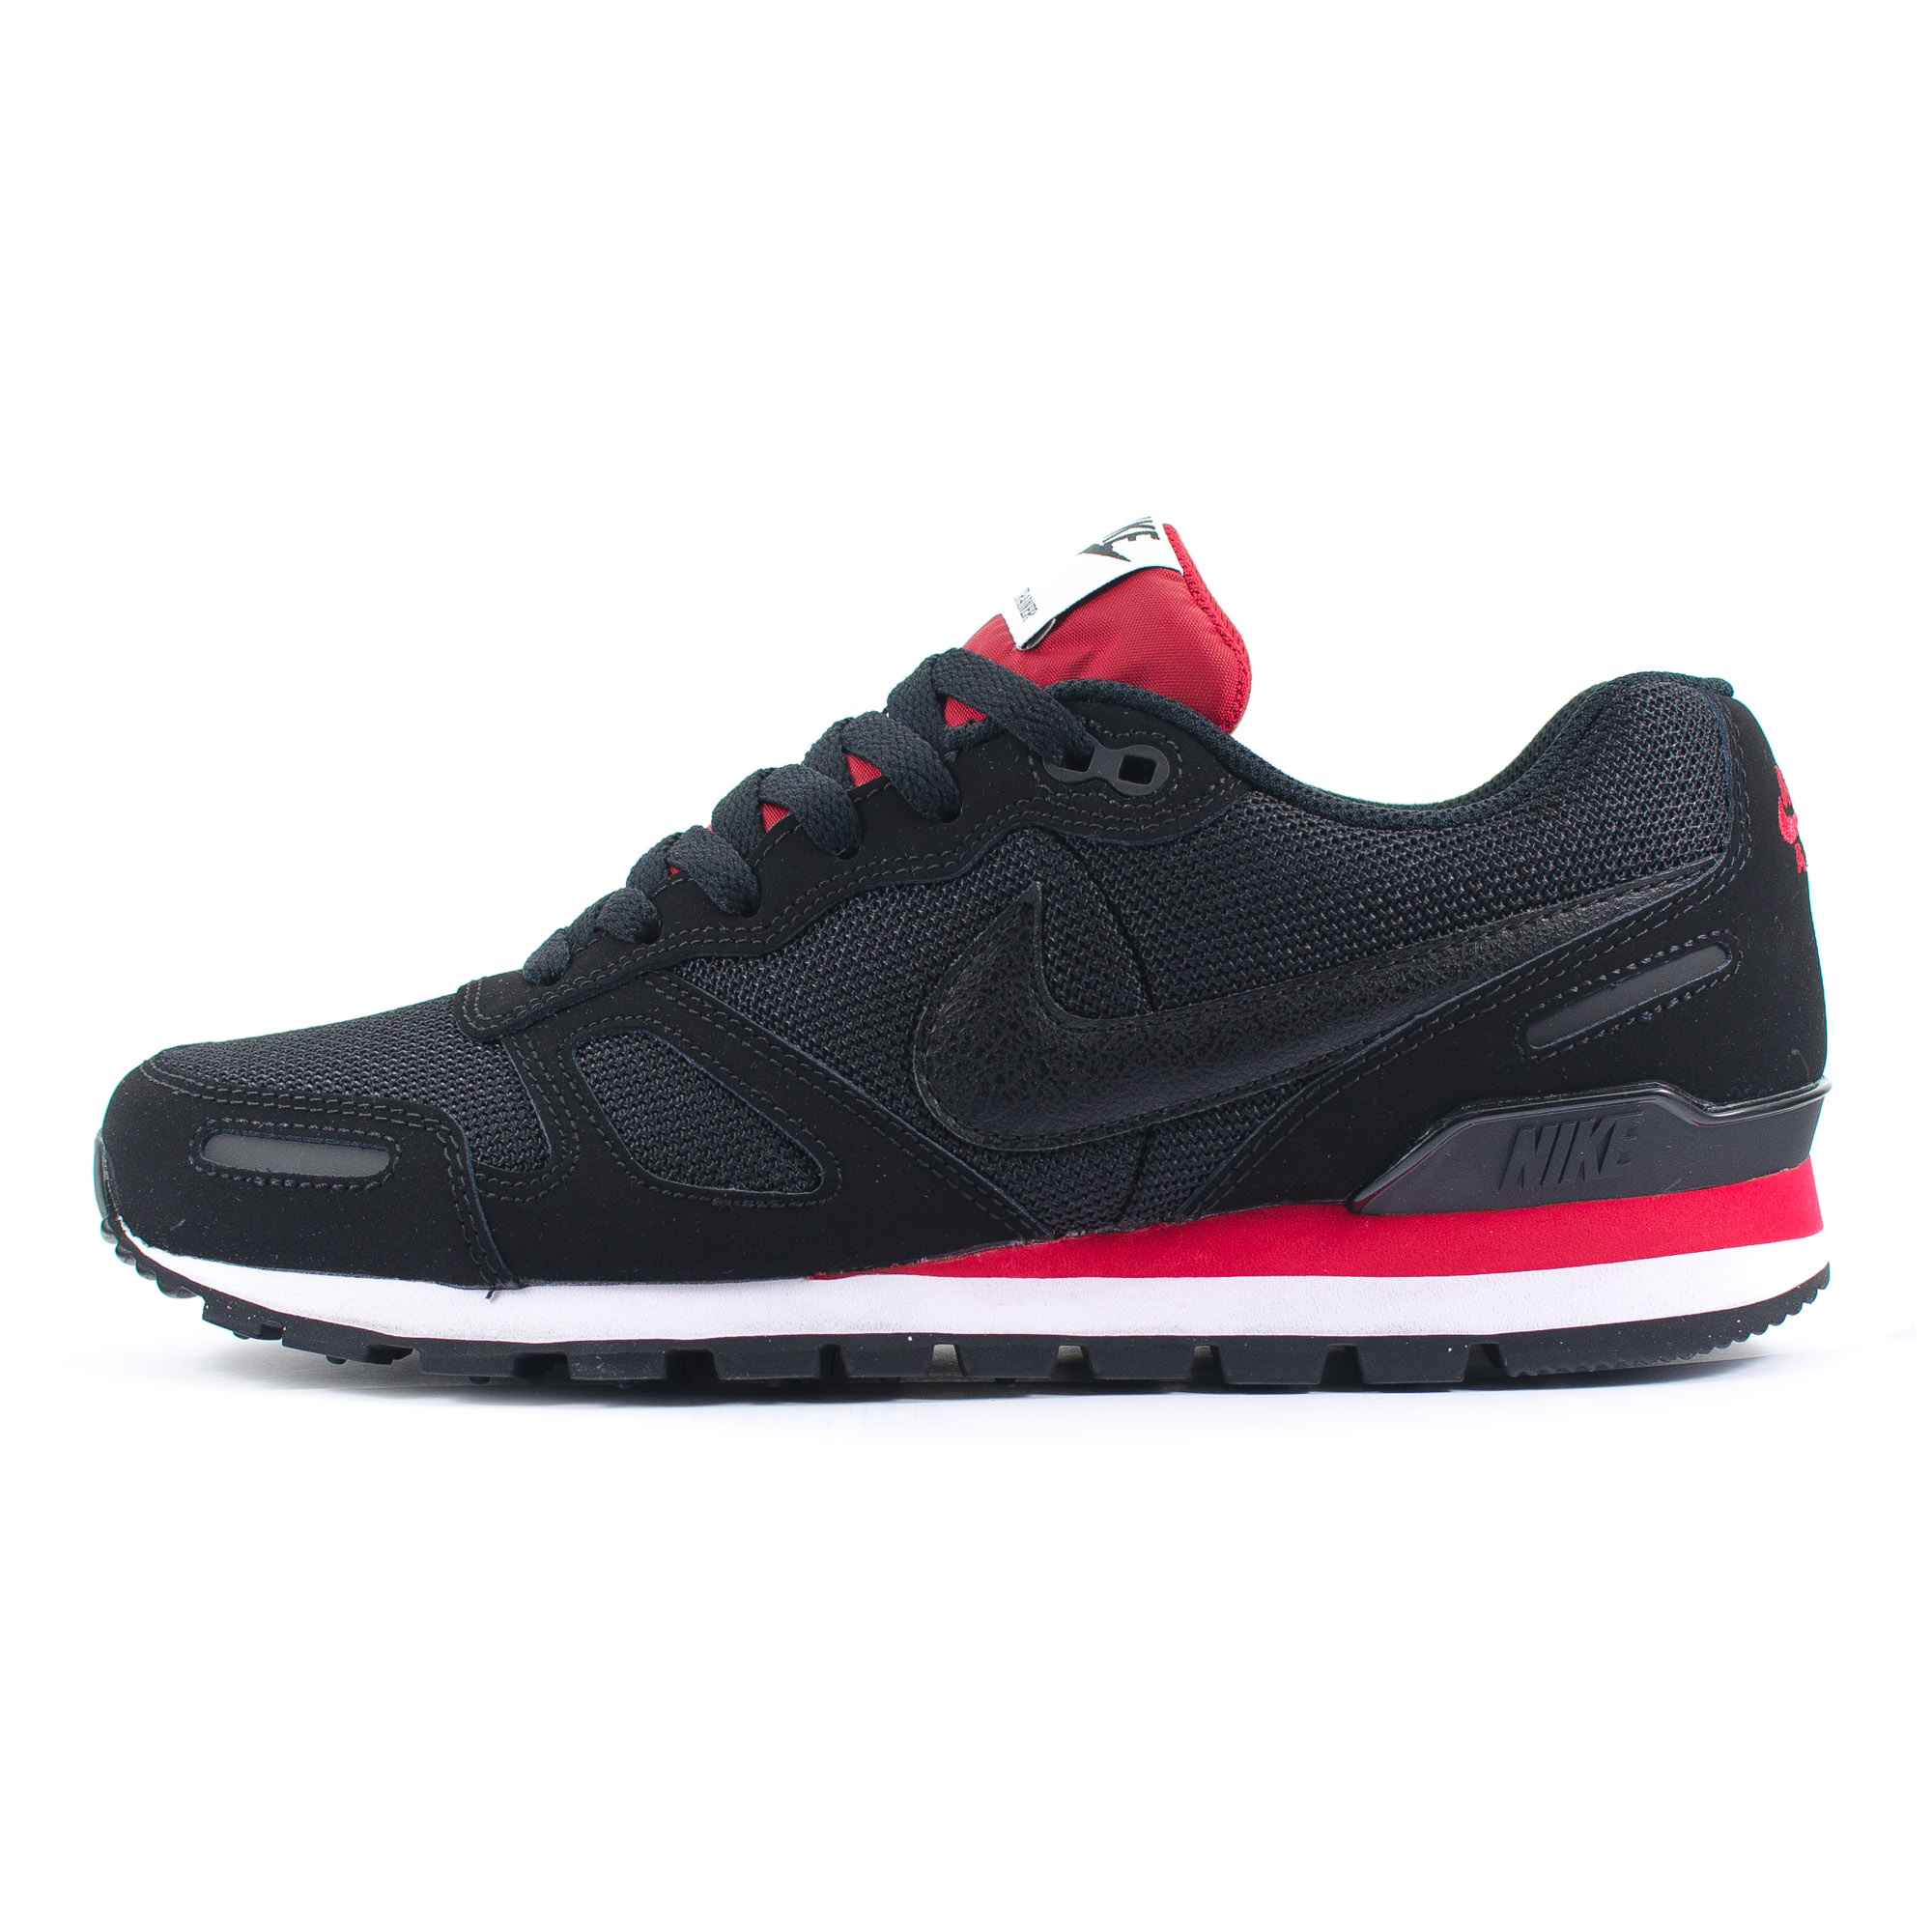 mens nike air waffle trainer black red white running trainers 429628 060 ebay. Black Bedroom Furniture Sets. Home Design Ideas